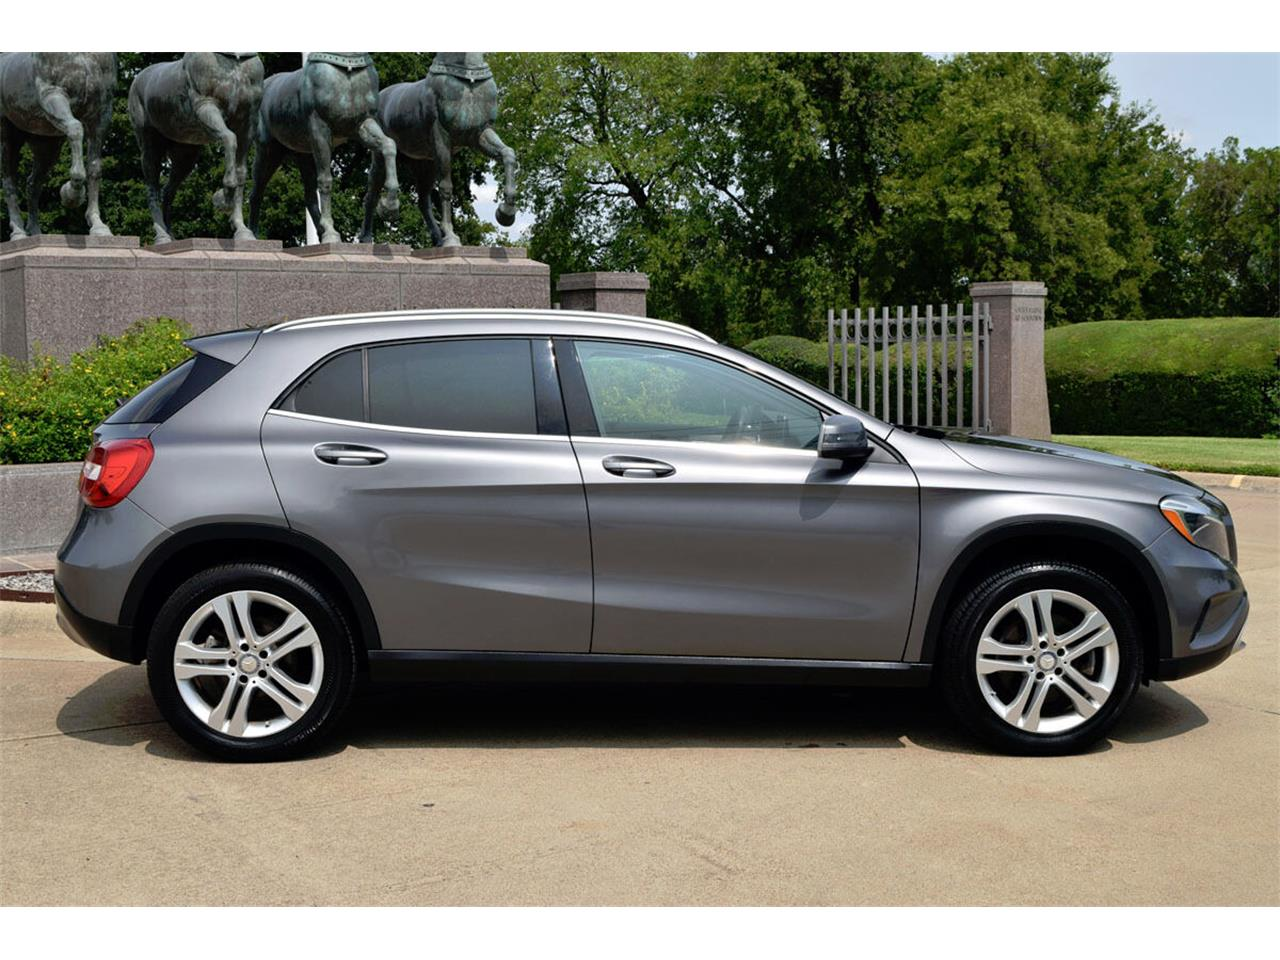 2017 Mercedes-Benz GL-Class (CC-1390811) for sale in Fort Worth, Texas